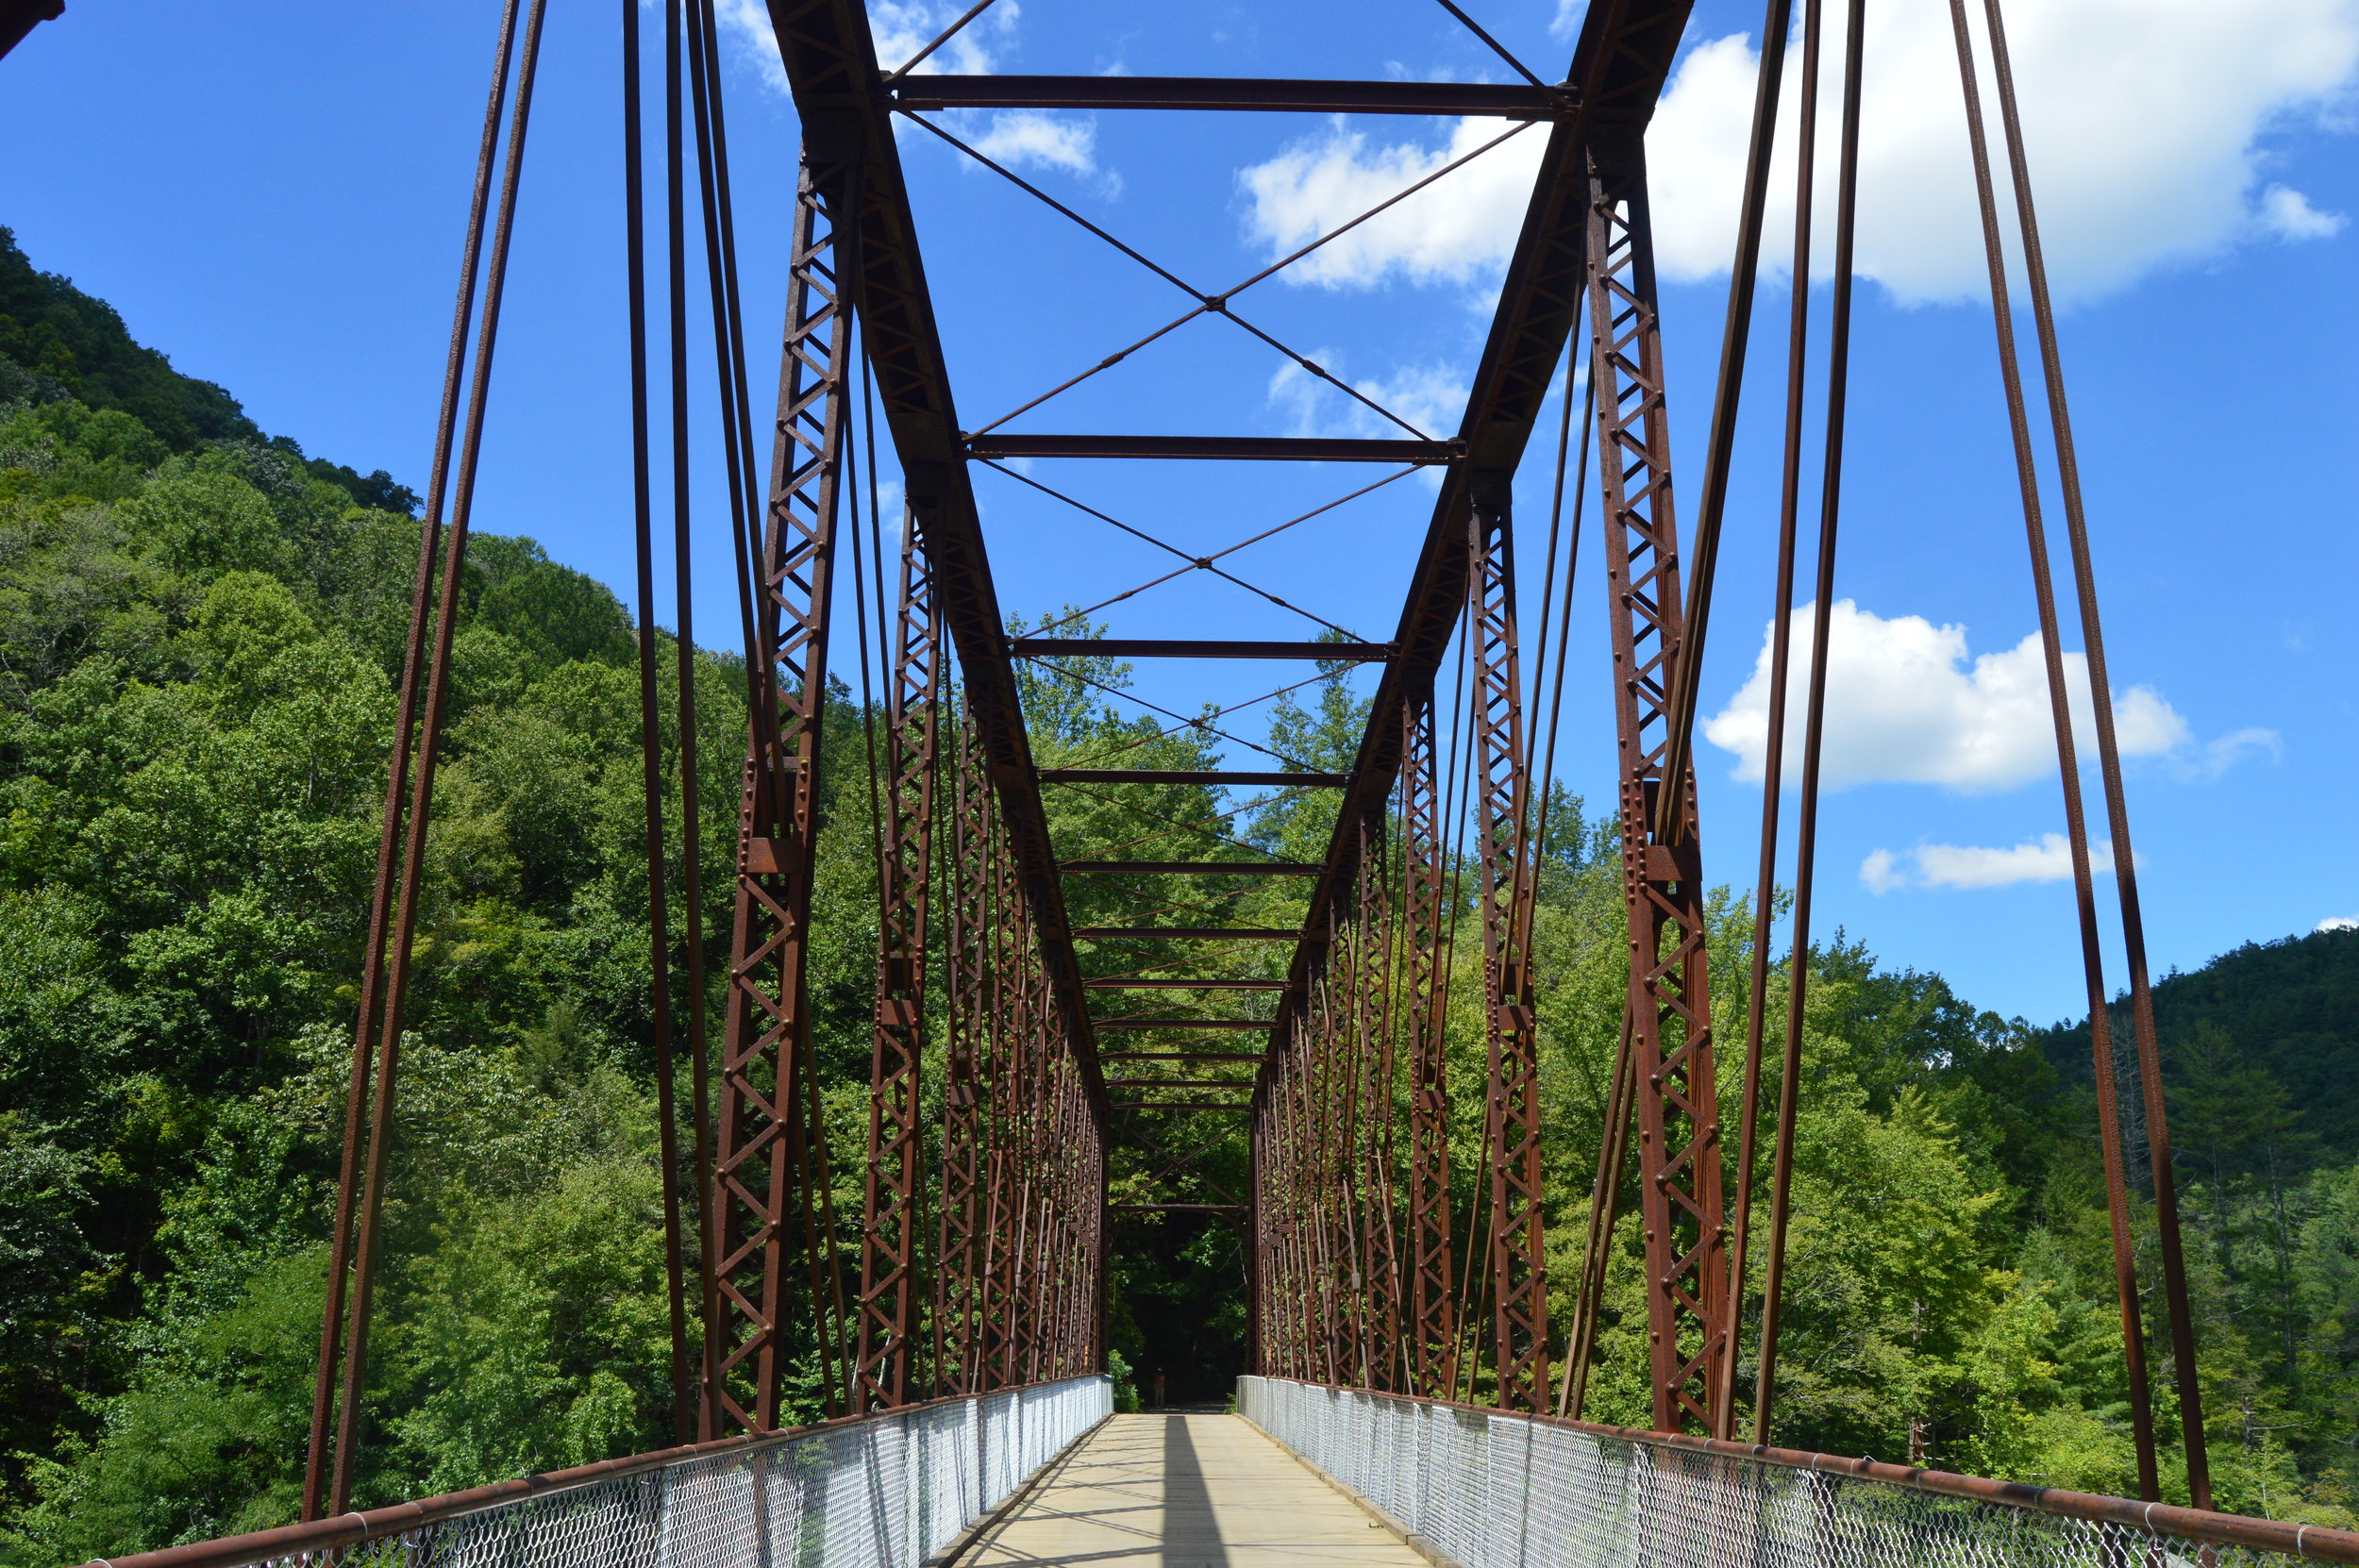 The O&W Bridge inside Big South Fork NRRA was built in the early 1900's to transport lumber and coal in the region.